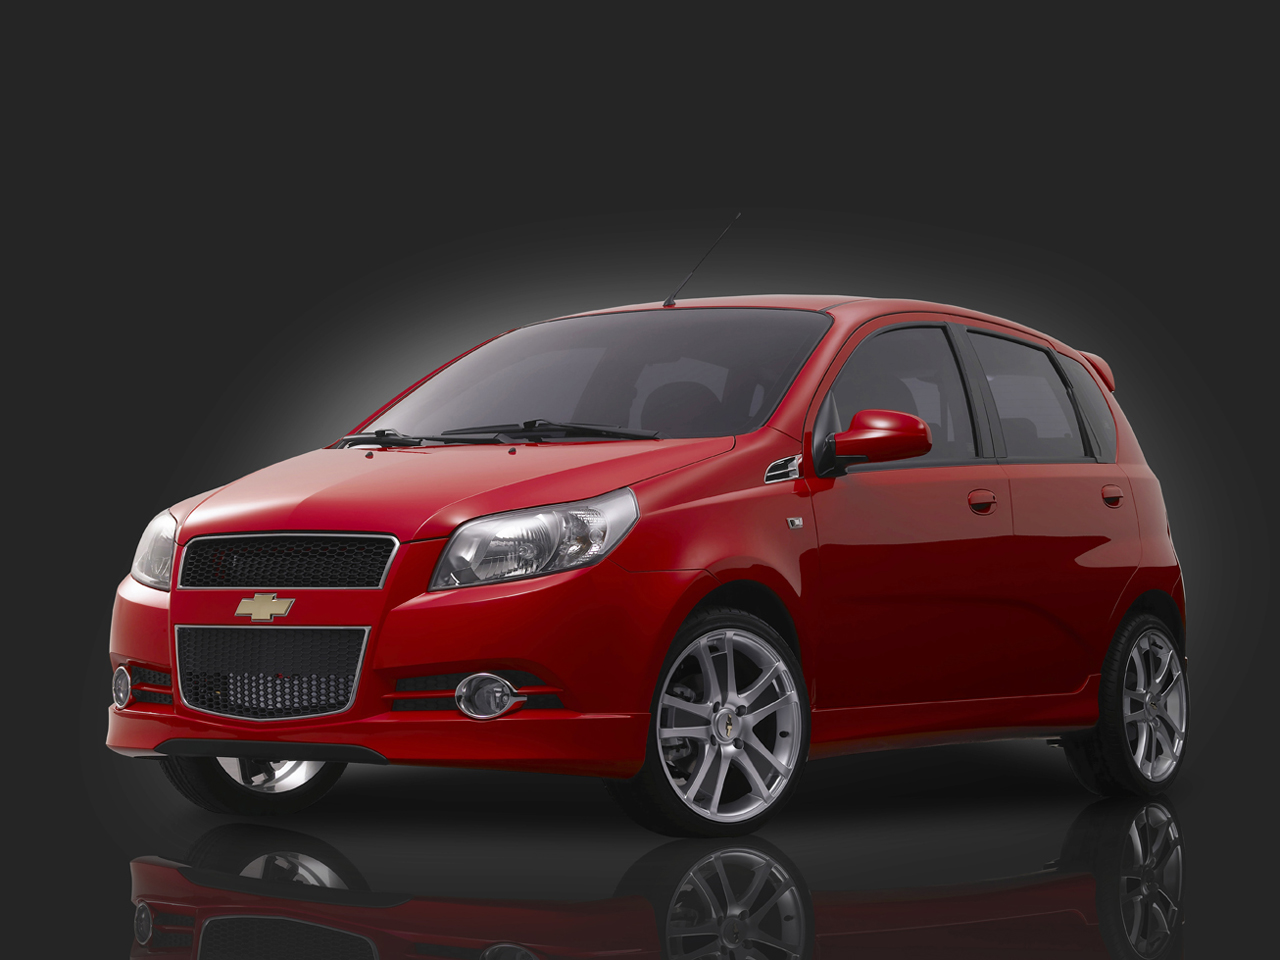 chevrolet aveo review and photos. Black Bedroom Furniture Sets. Home Design Ideas